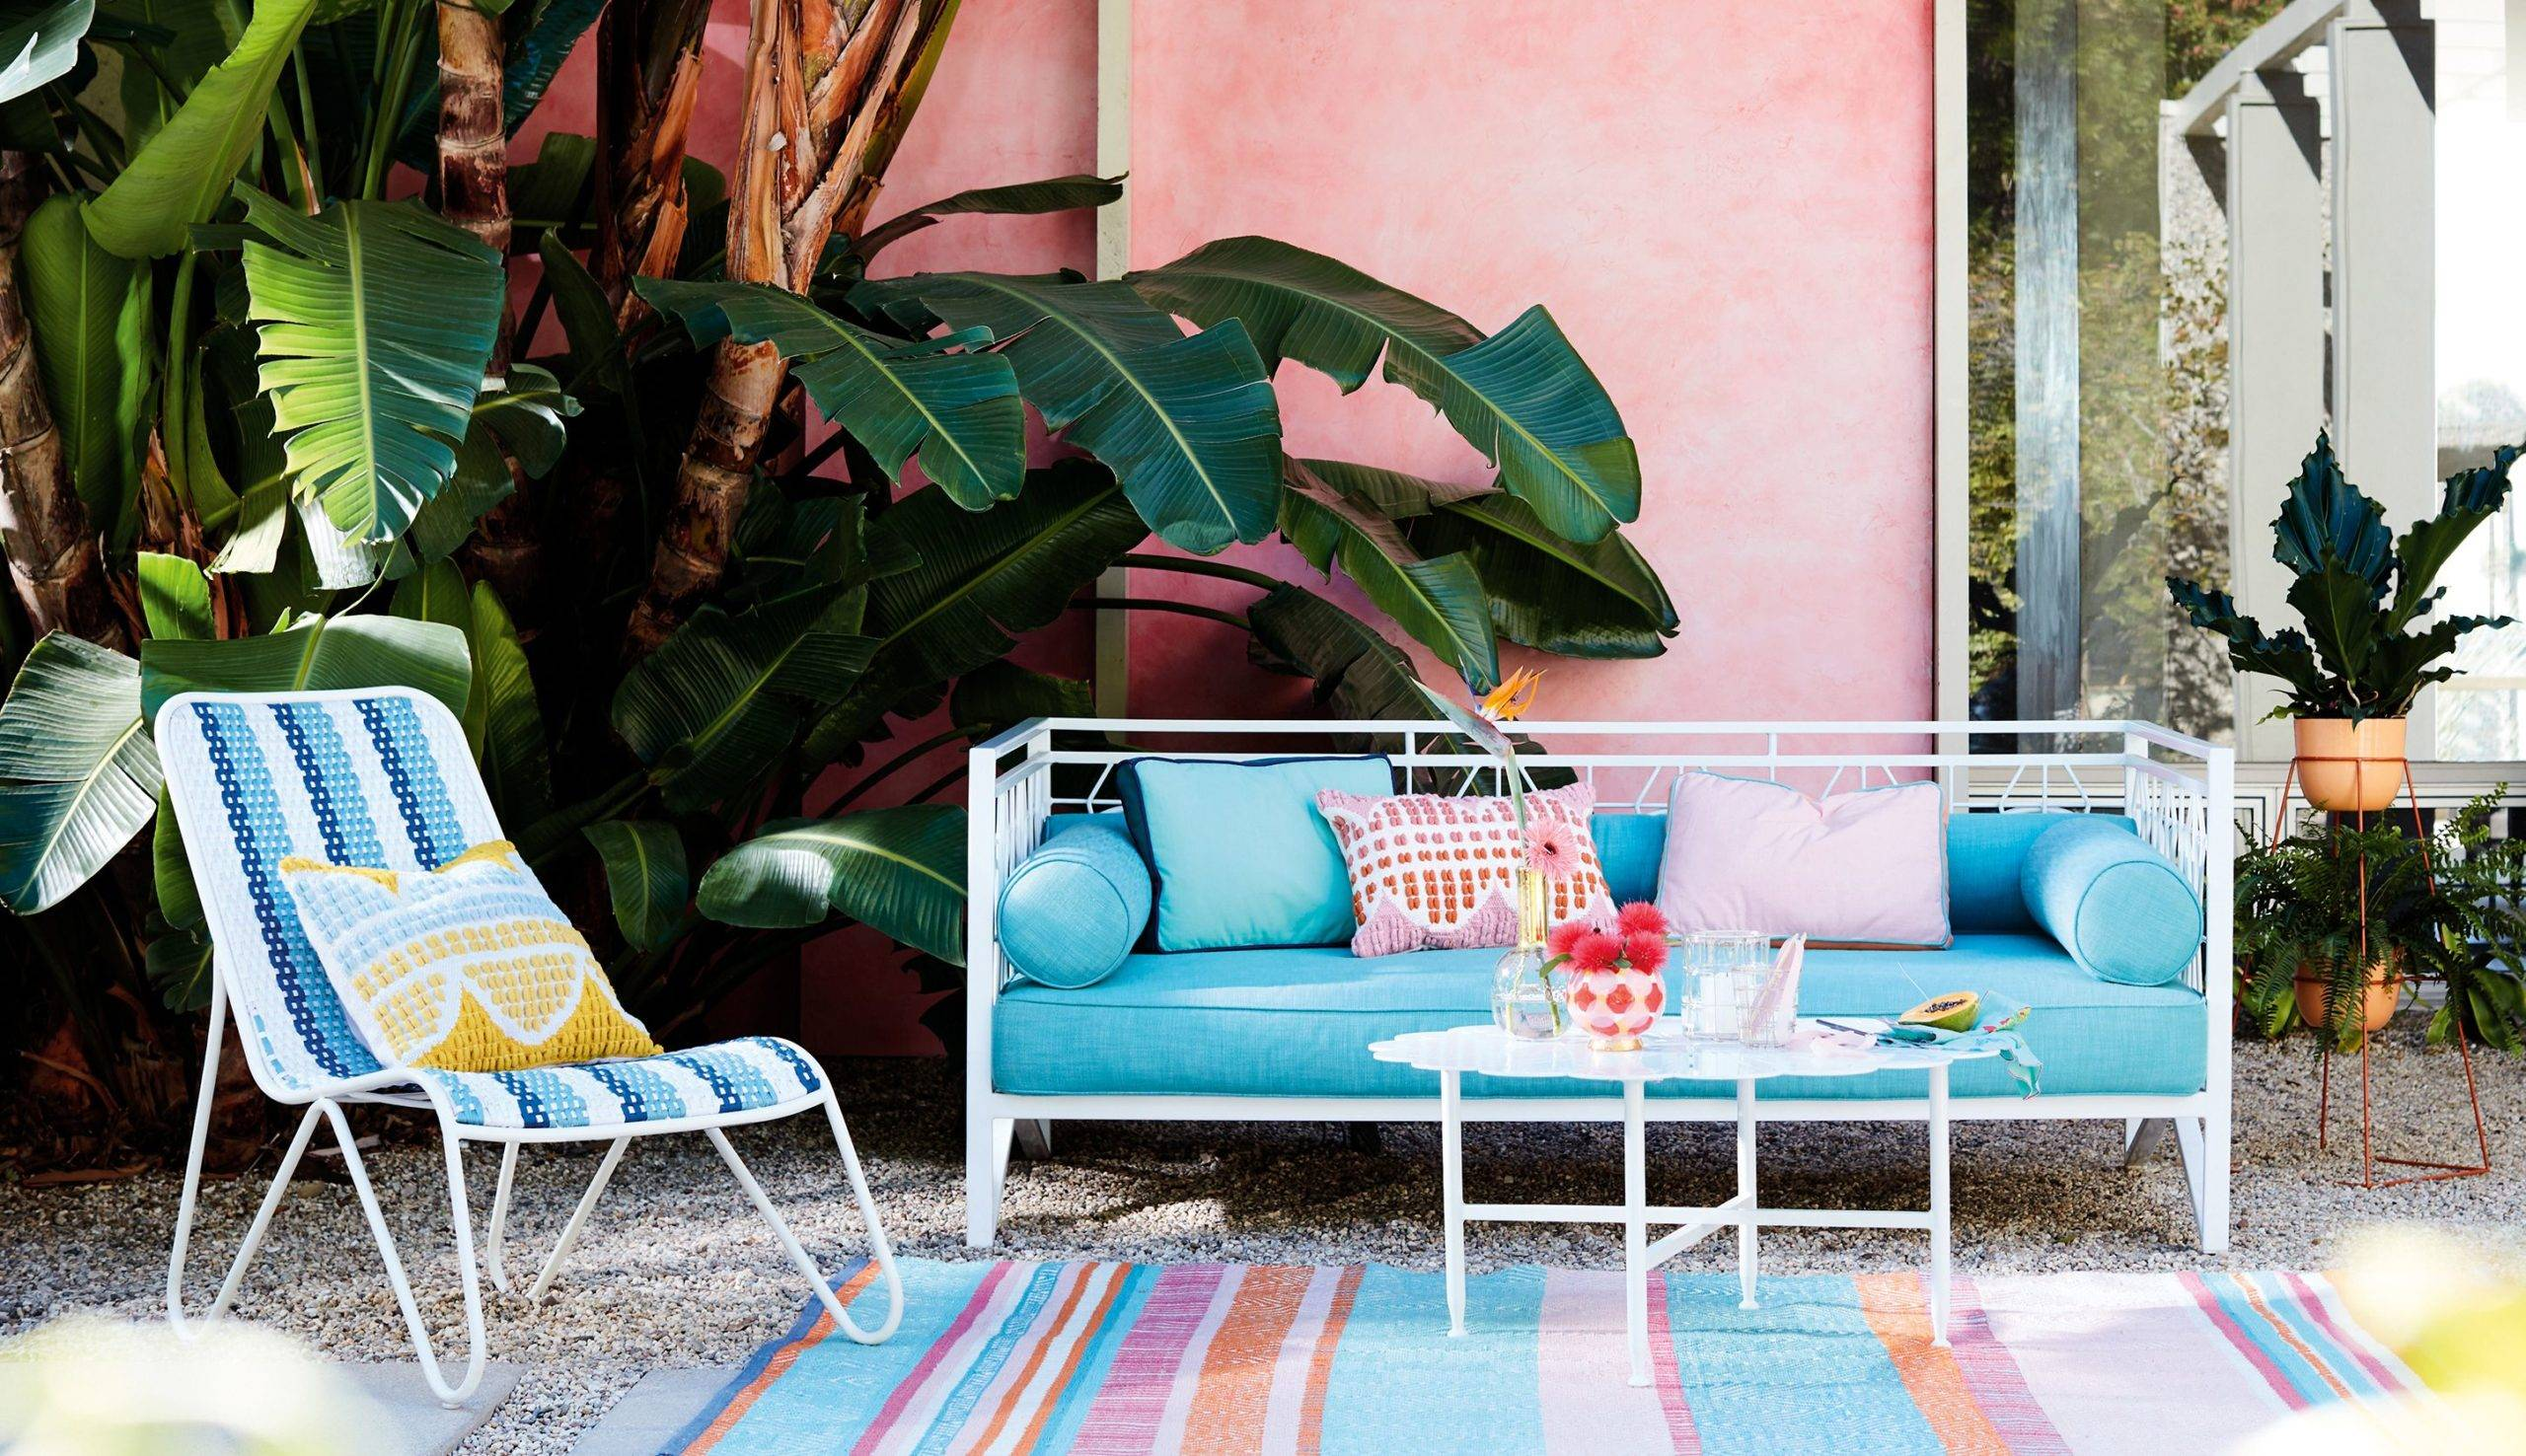 Bright Blue Day Bed Patio Decor Anthropologie Outdoor Striped Rug Pink Walls Color